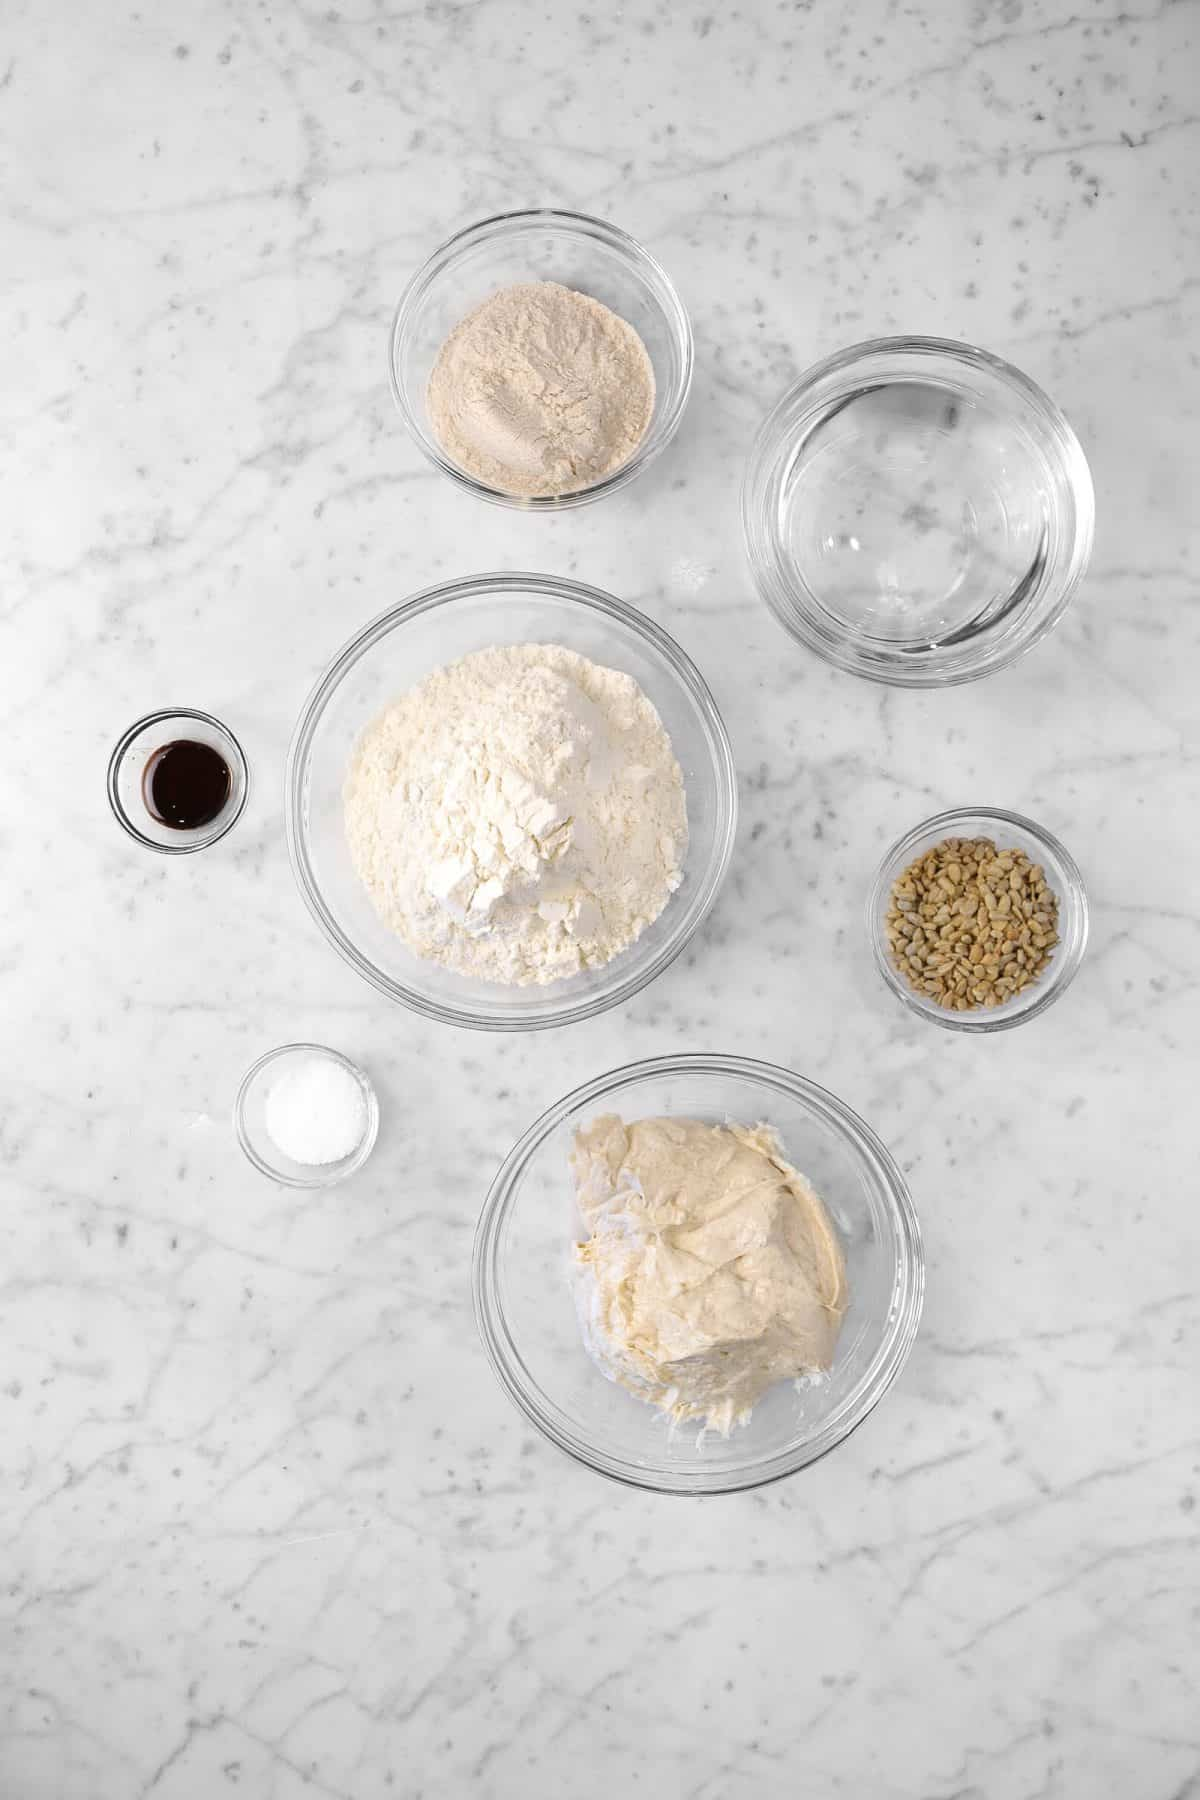 ingredients for sourdough whole wheat bread with sunflower seeds on a marble counter